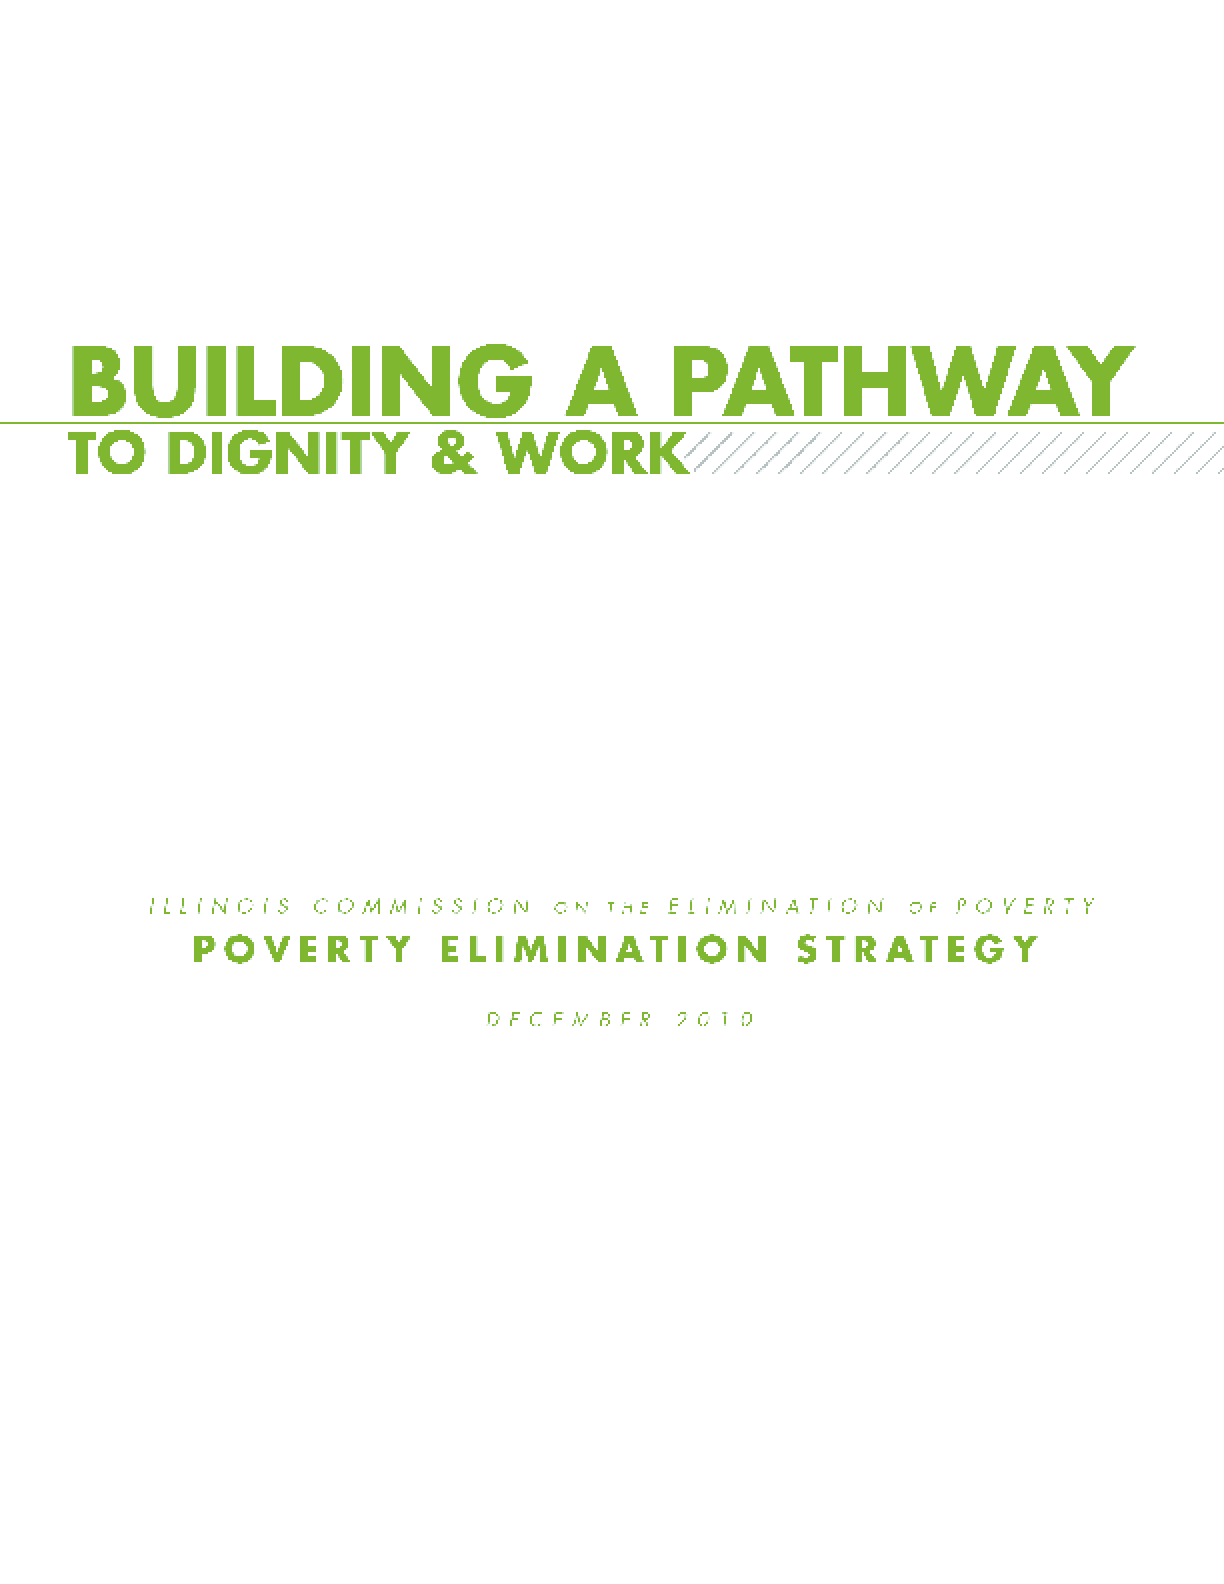 Building a Pathway to Dignity & Work: Annual Progress Report 2010